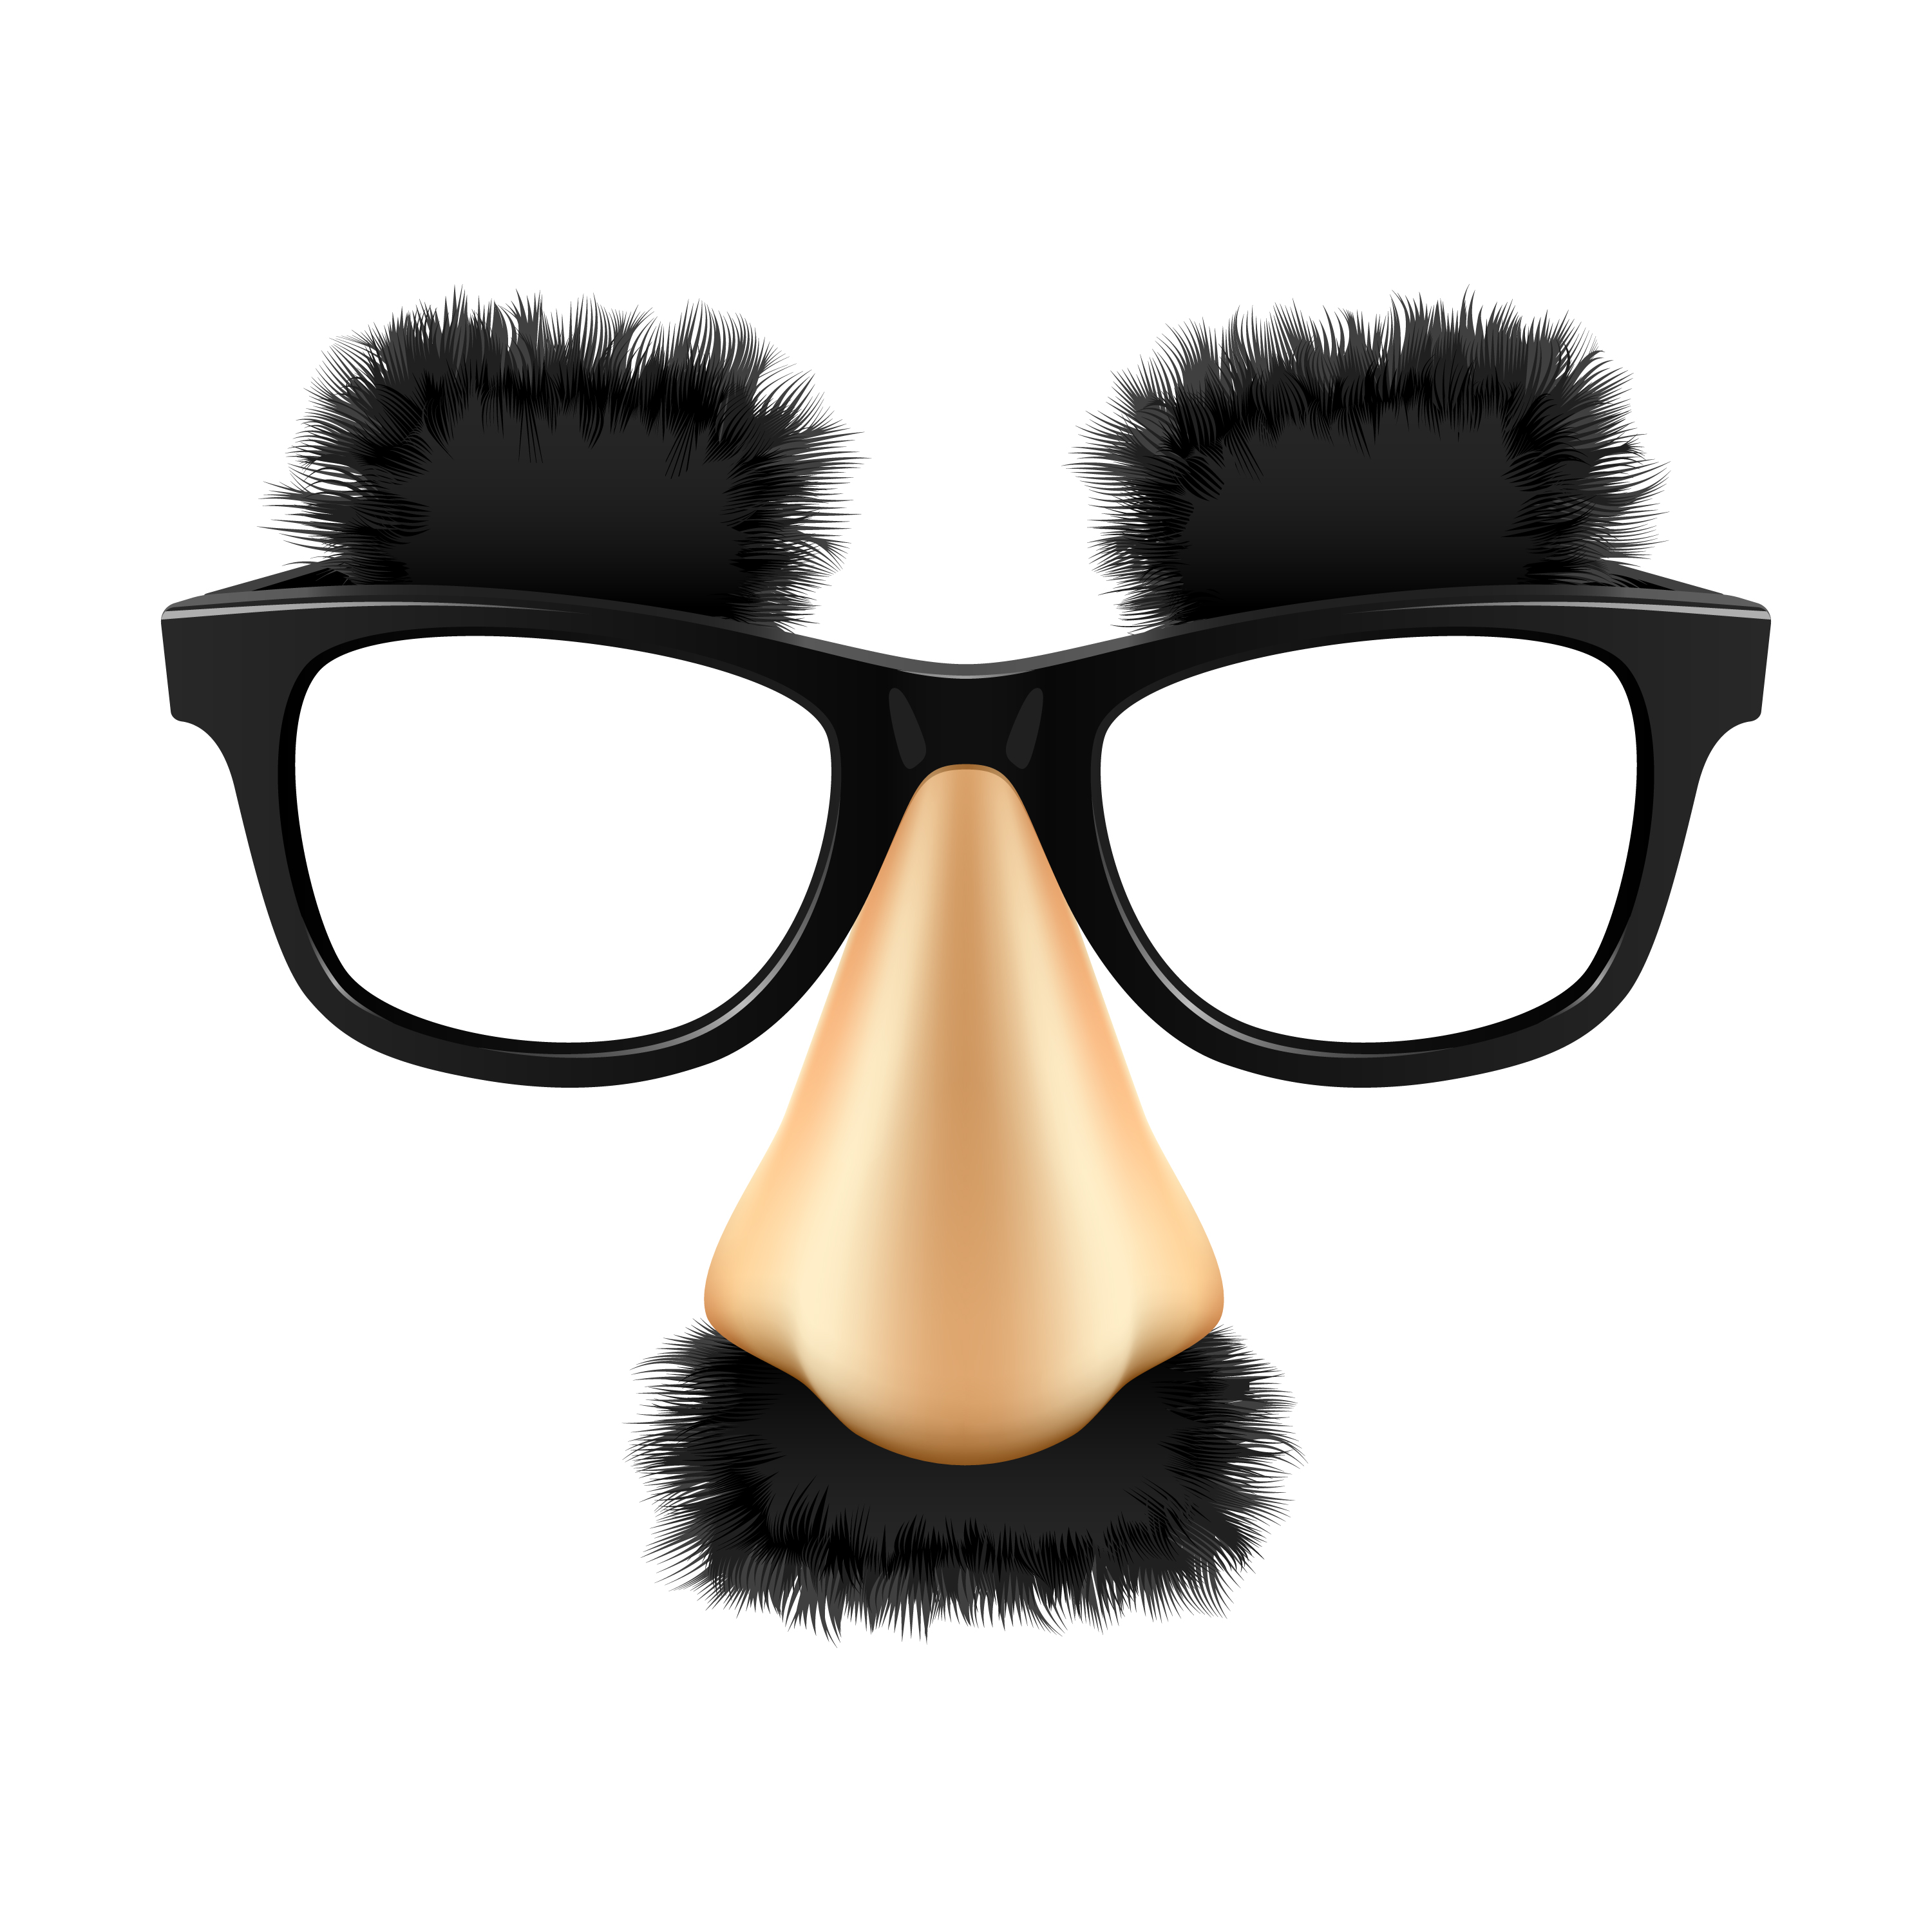 Image result for Cartoon Spectacles